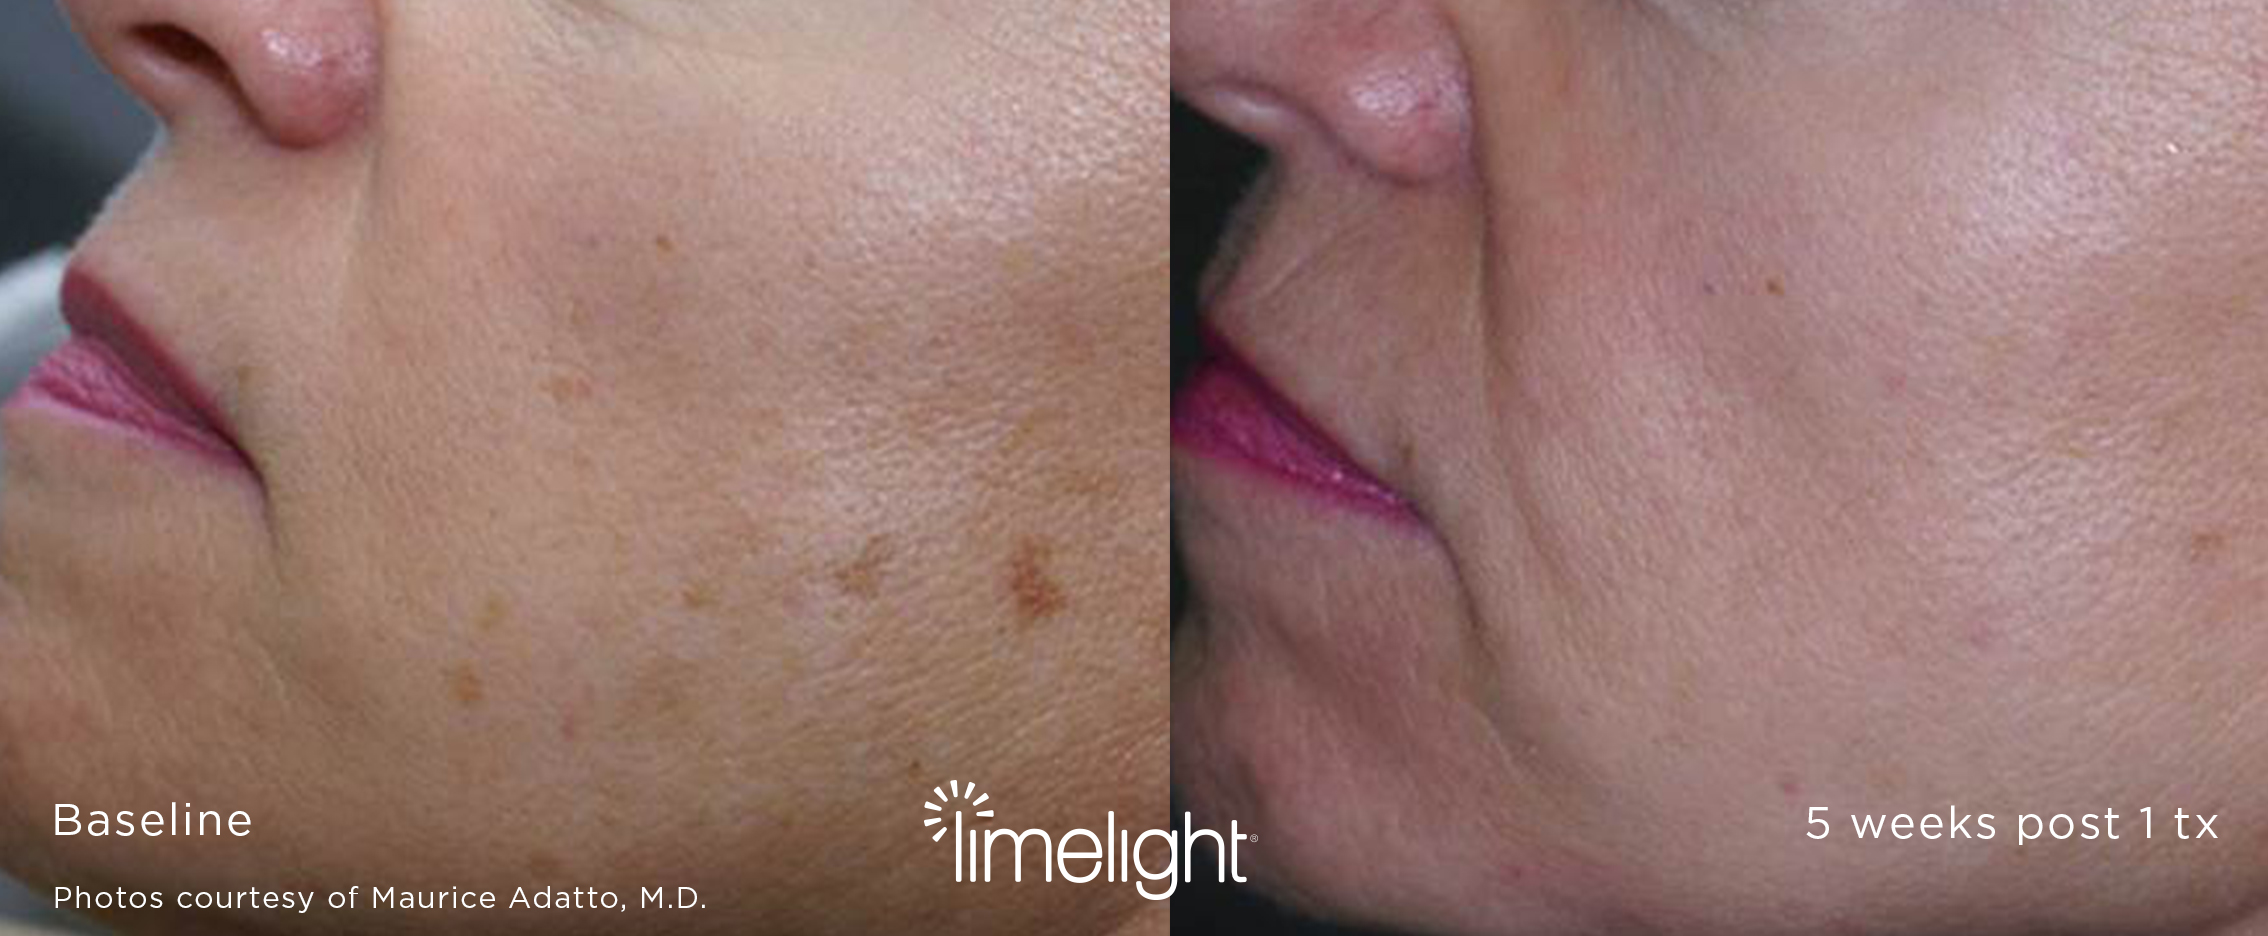 LimeLight IPL PhotoFacial